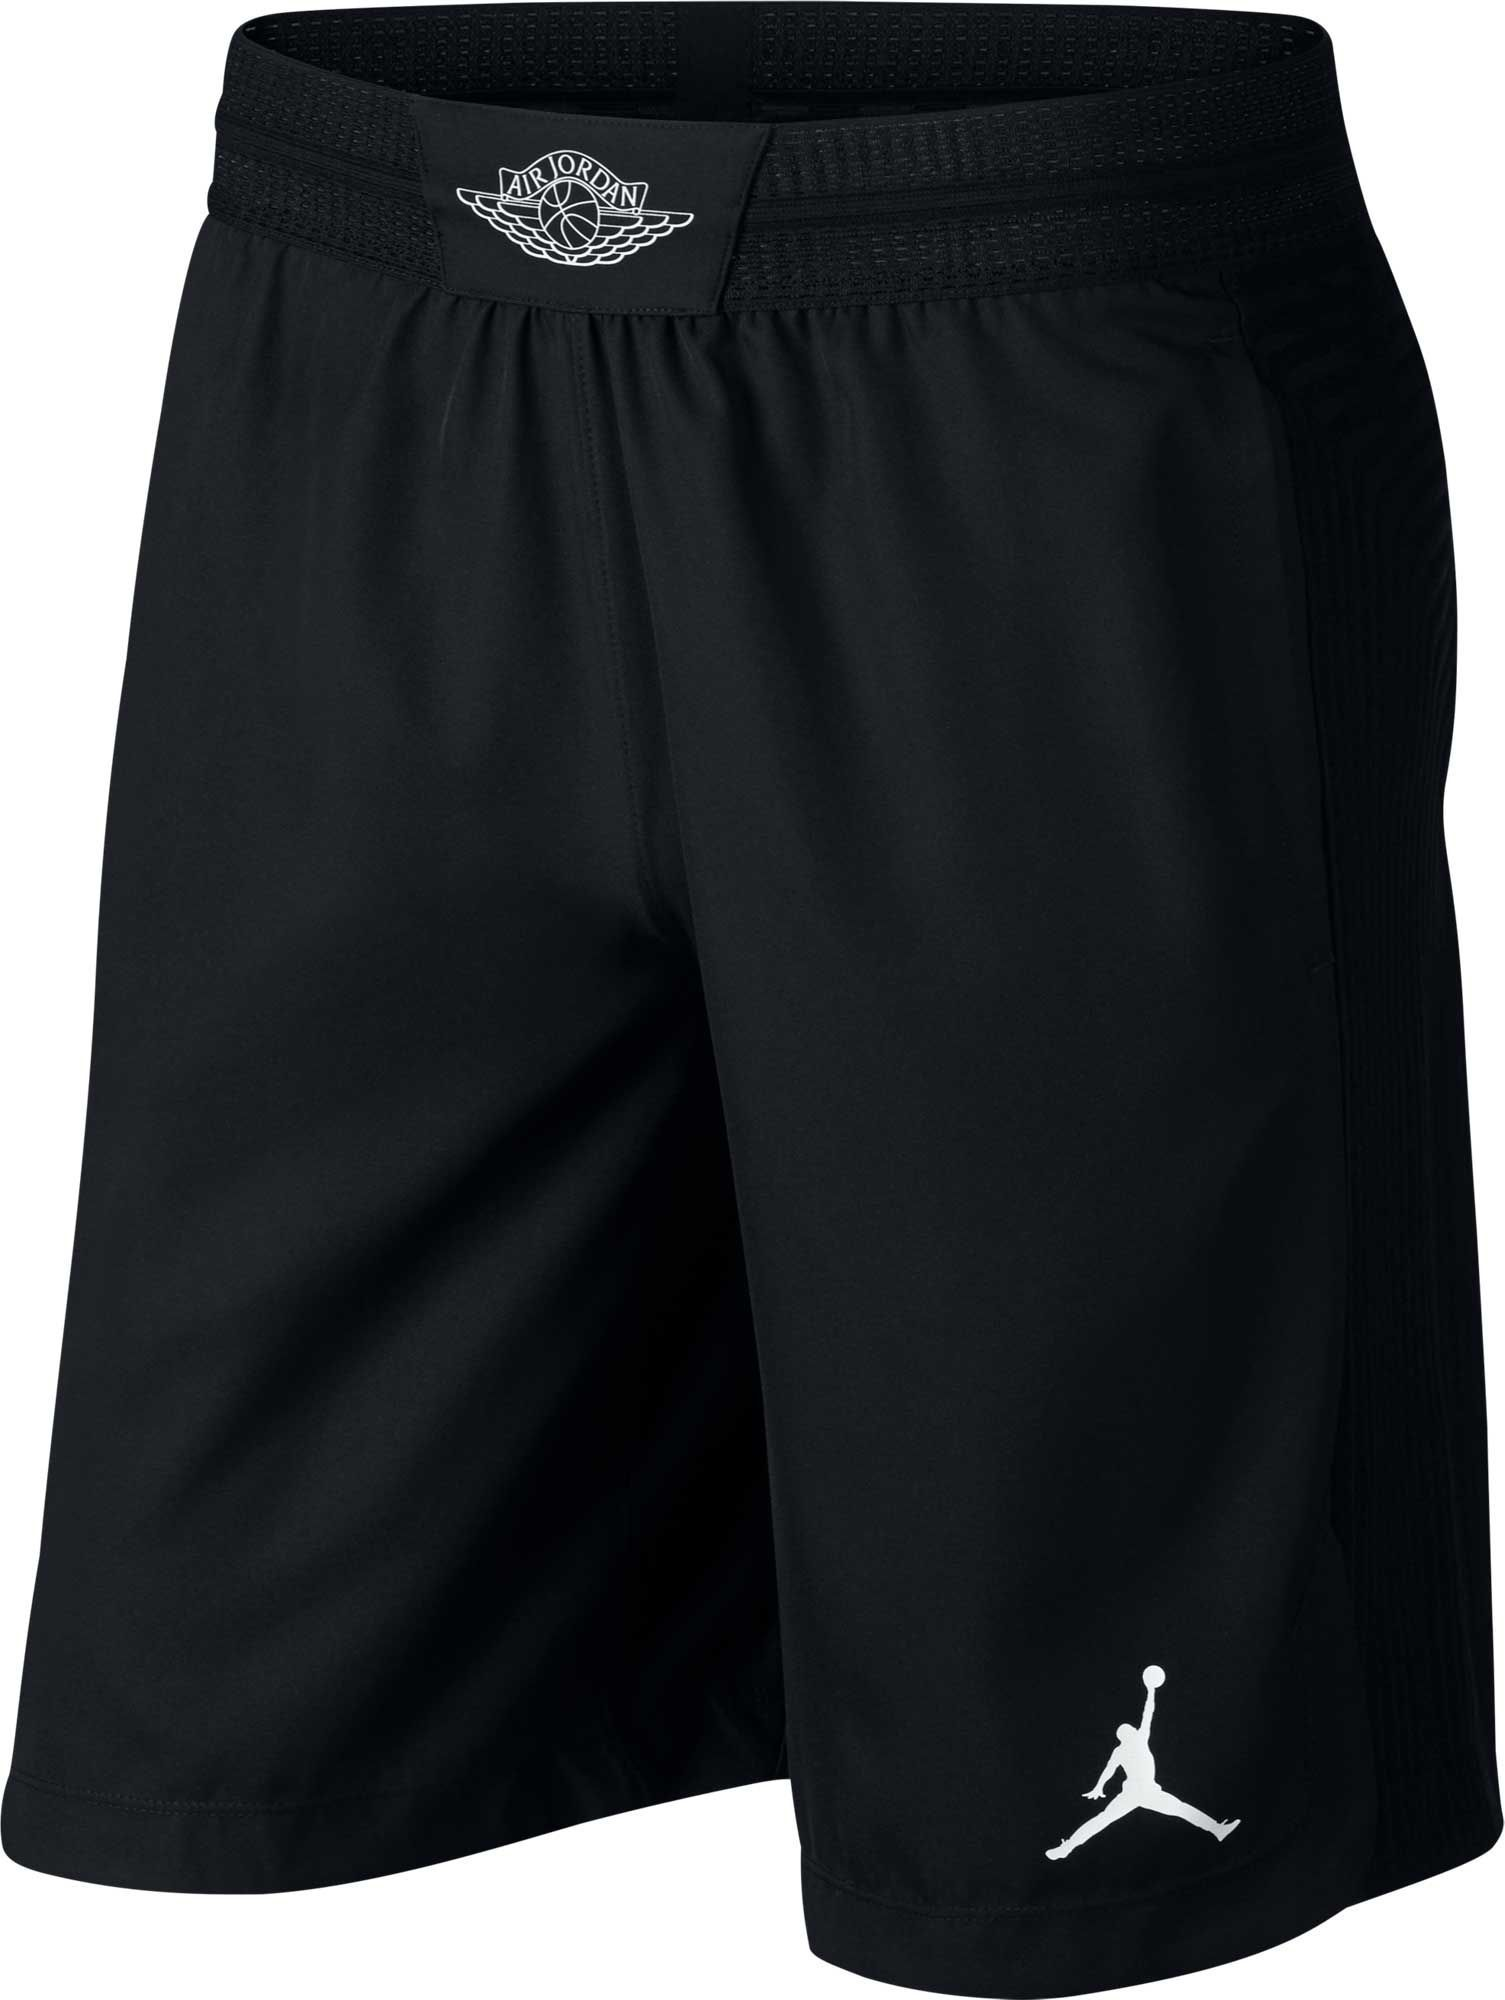 3c2e33ebd596 Jordan Men s Ultimate Flight Basketball Shorts in 2019